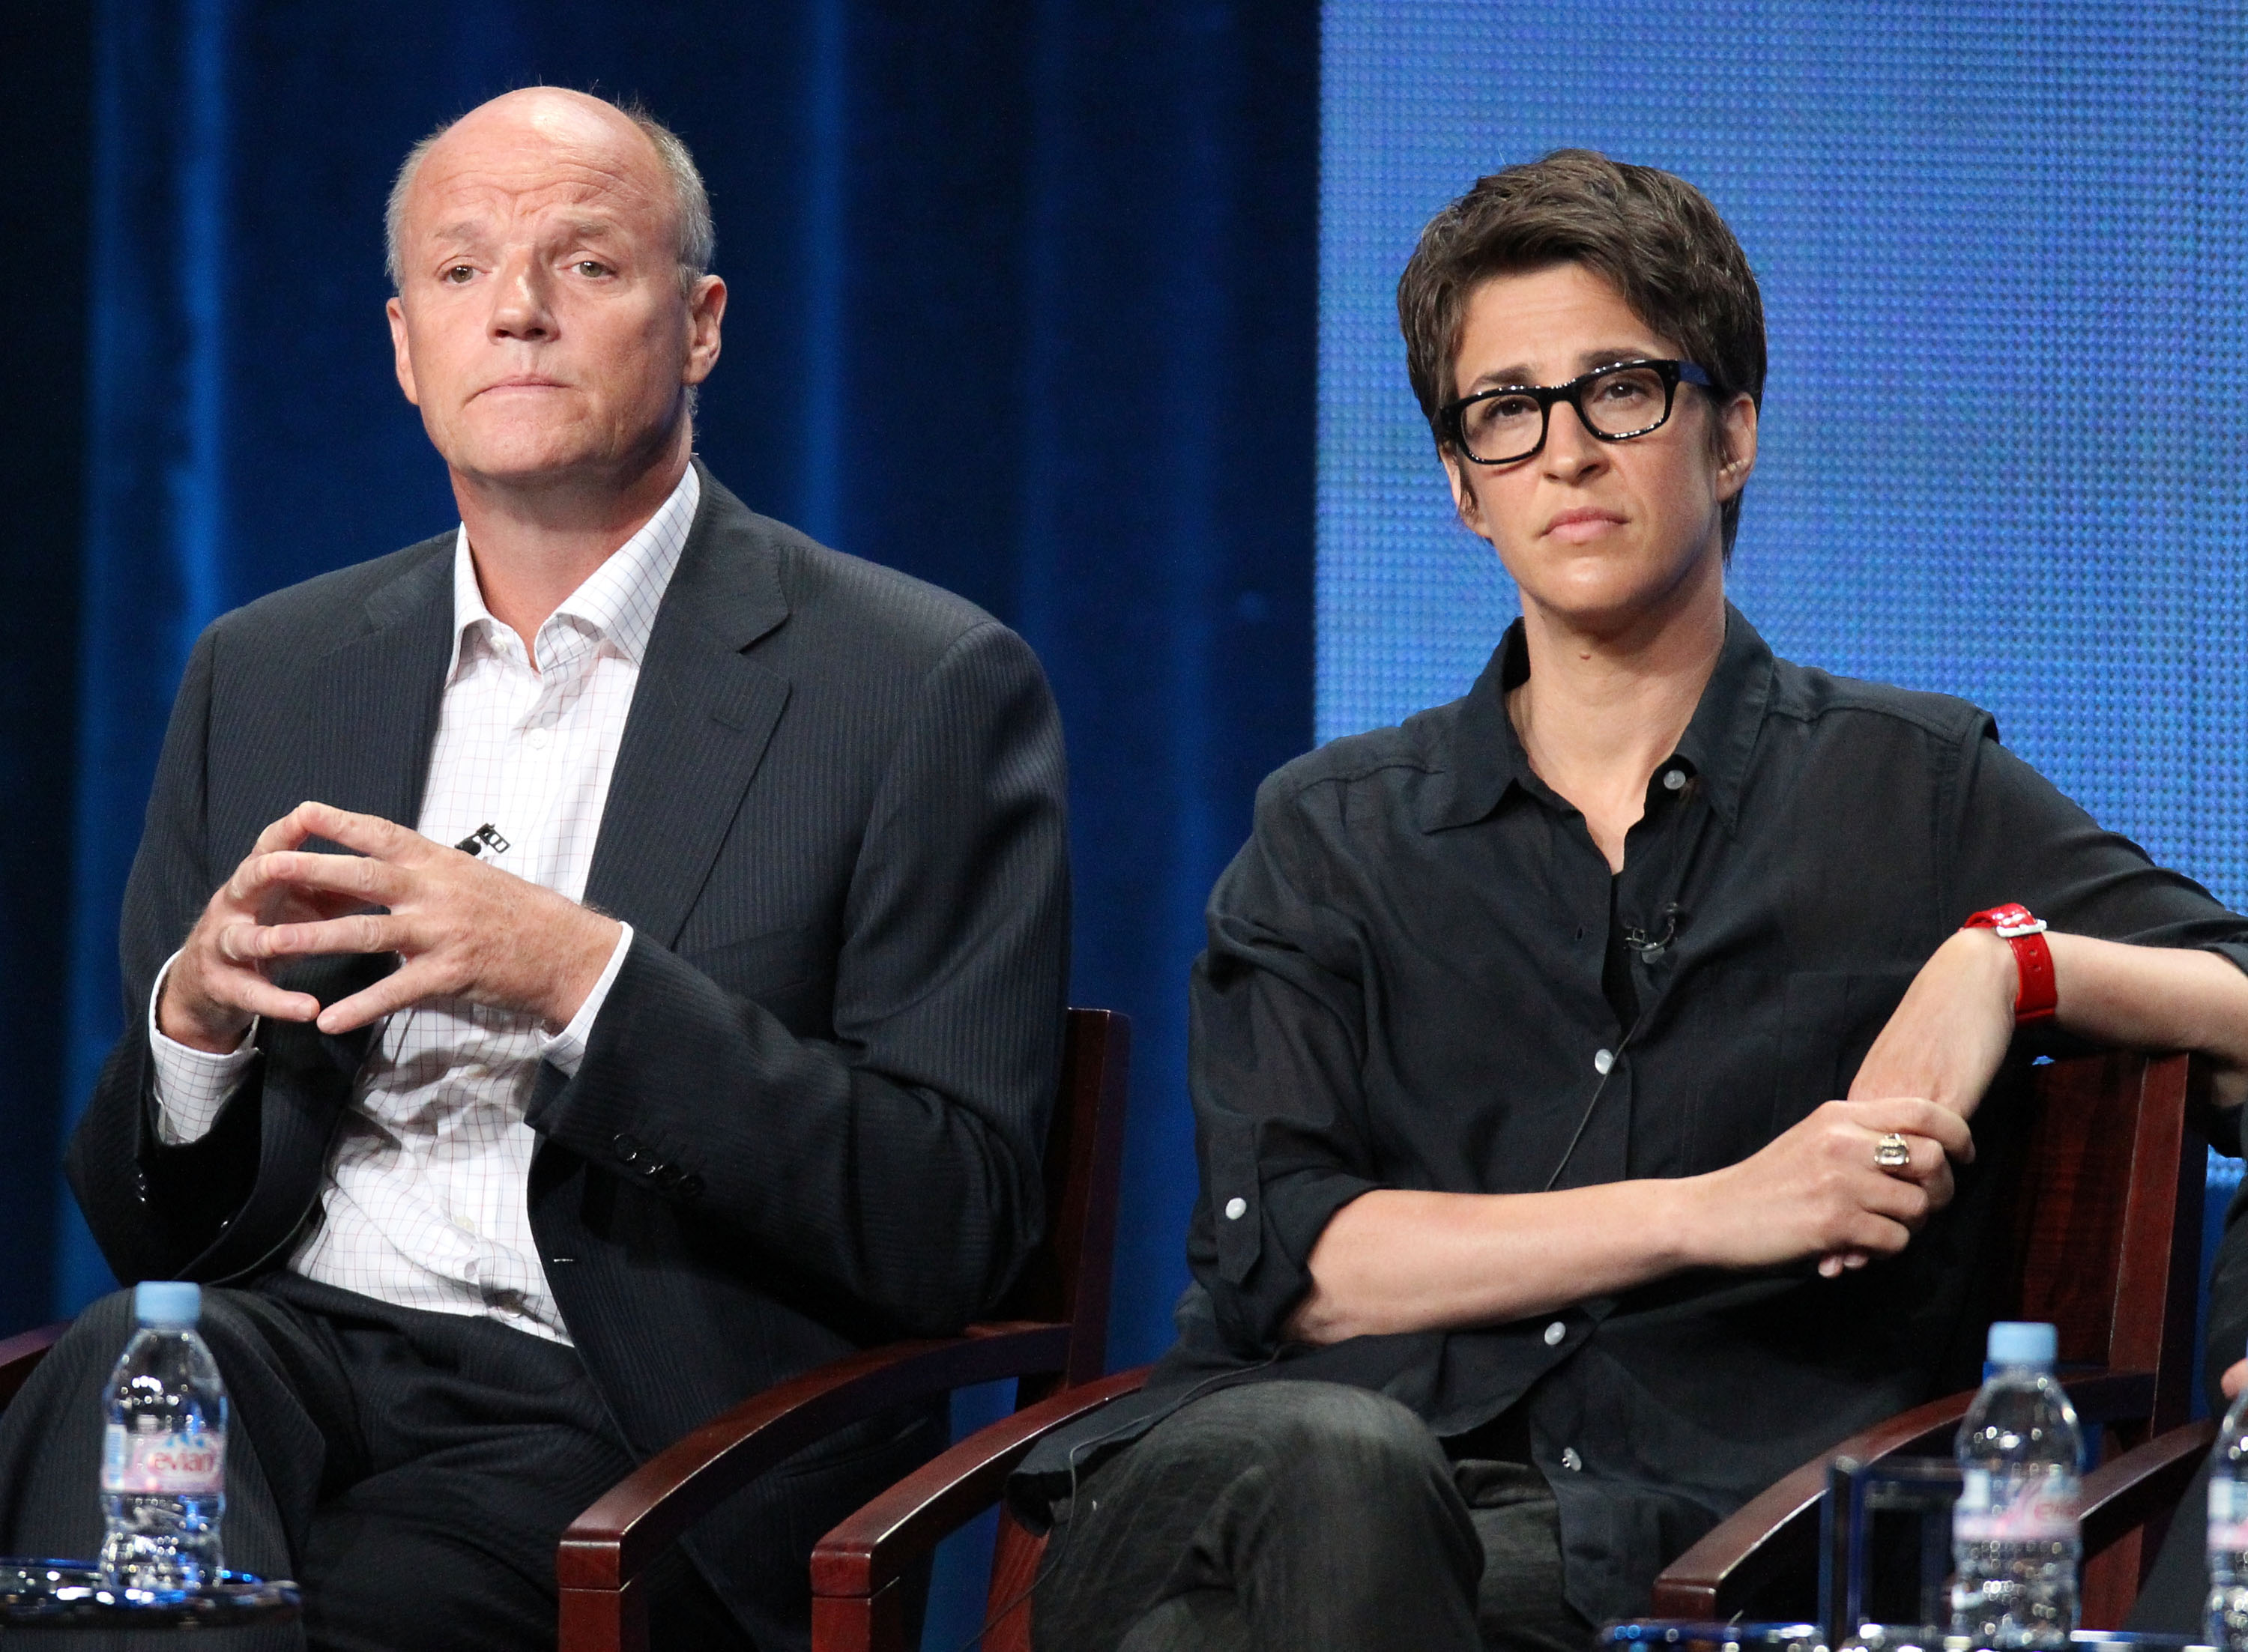 MSNBC President Reportedly Met With NY Times Editor to Get Writers Back on Maddow After Alleged Ban